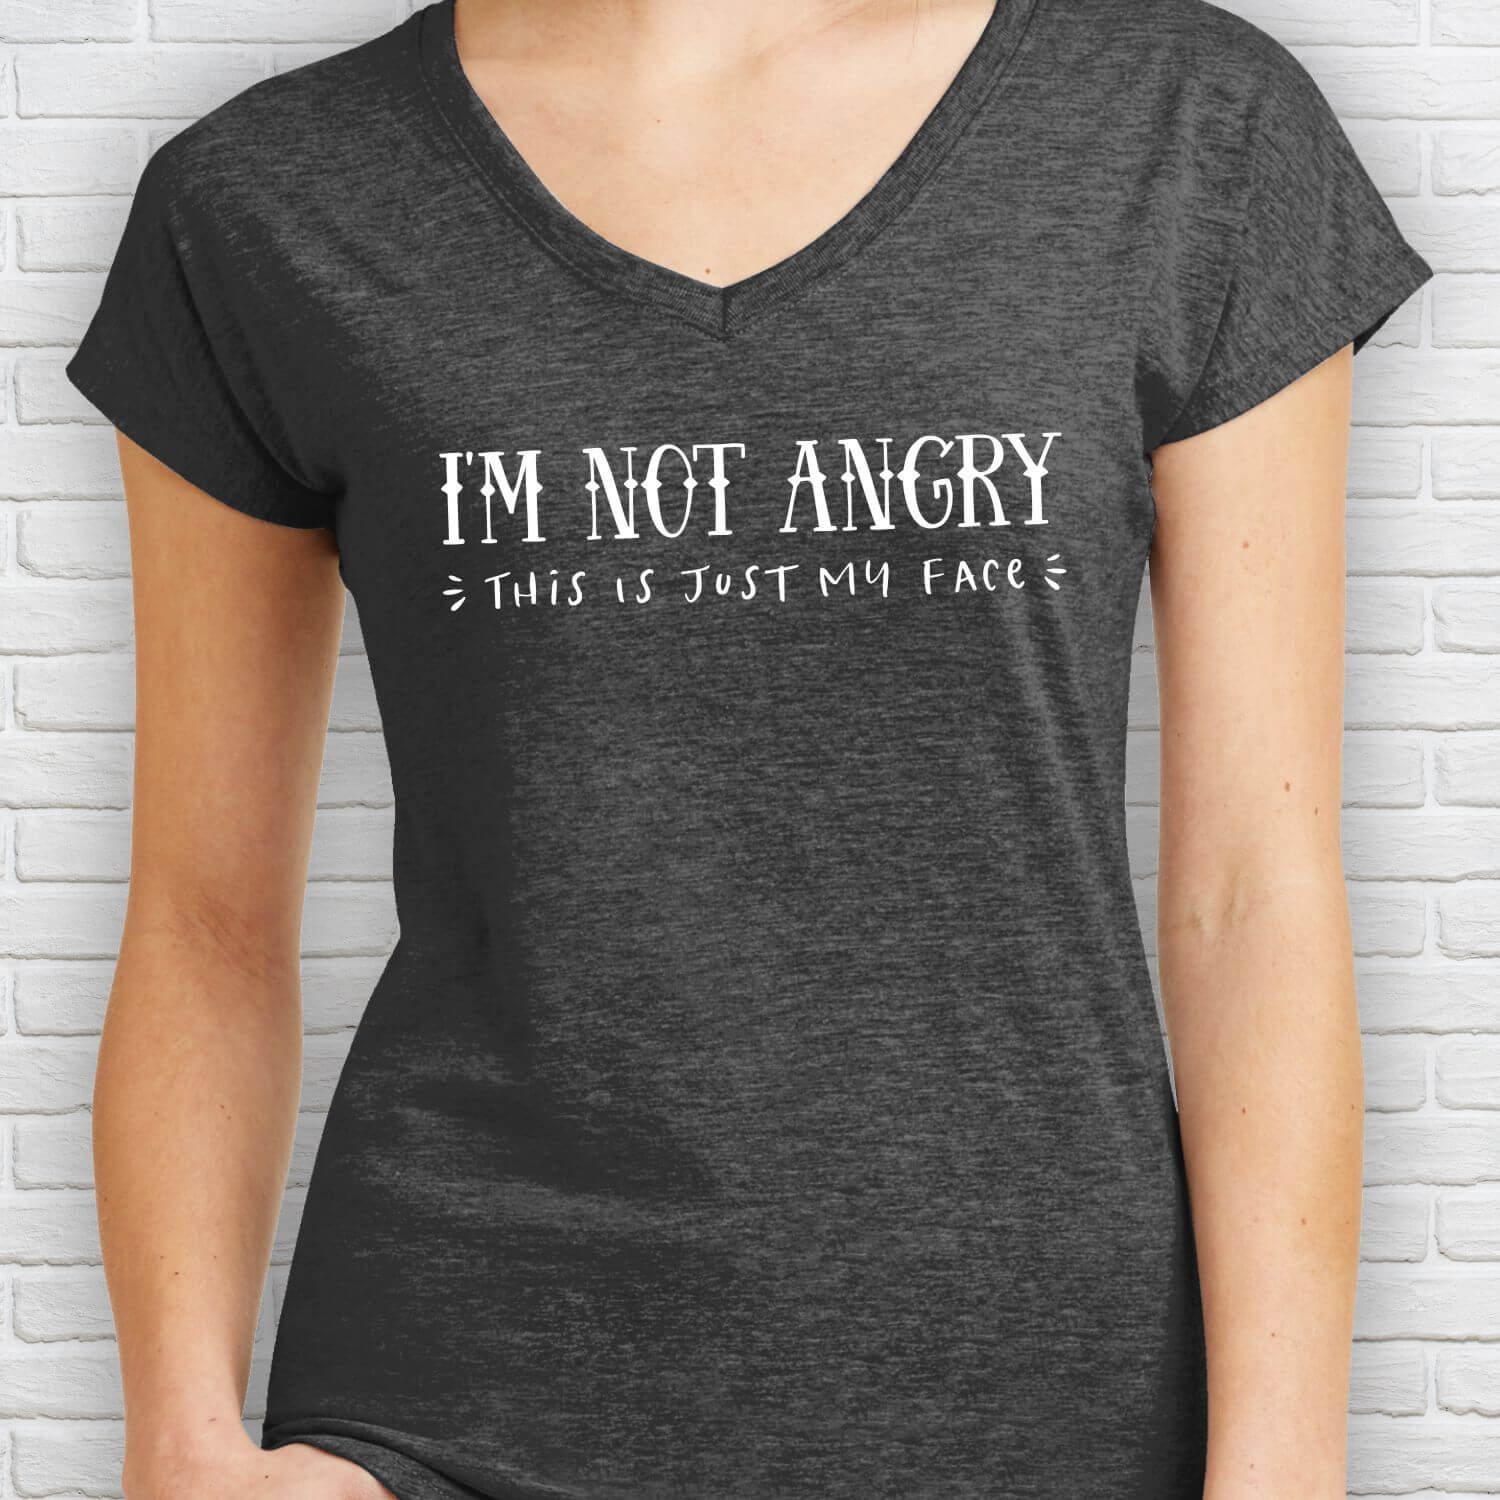 Not-Angry-Face-Ladies-Vneck-Shirt